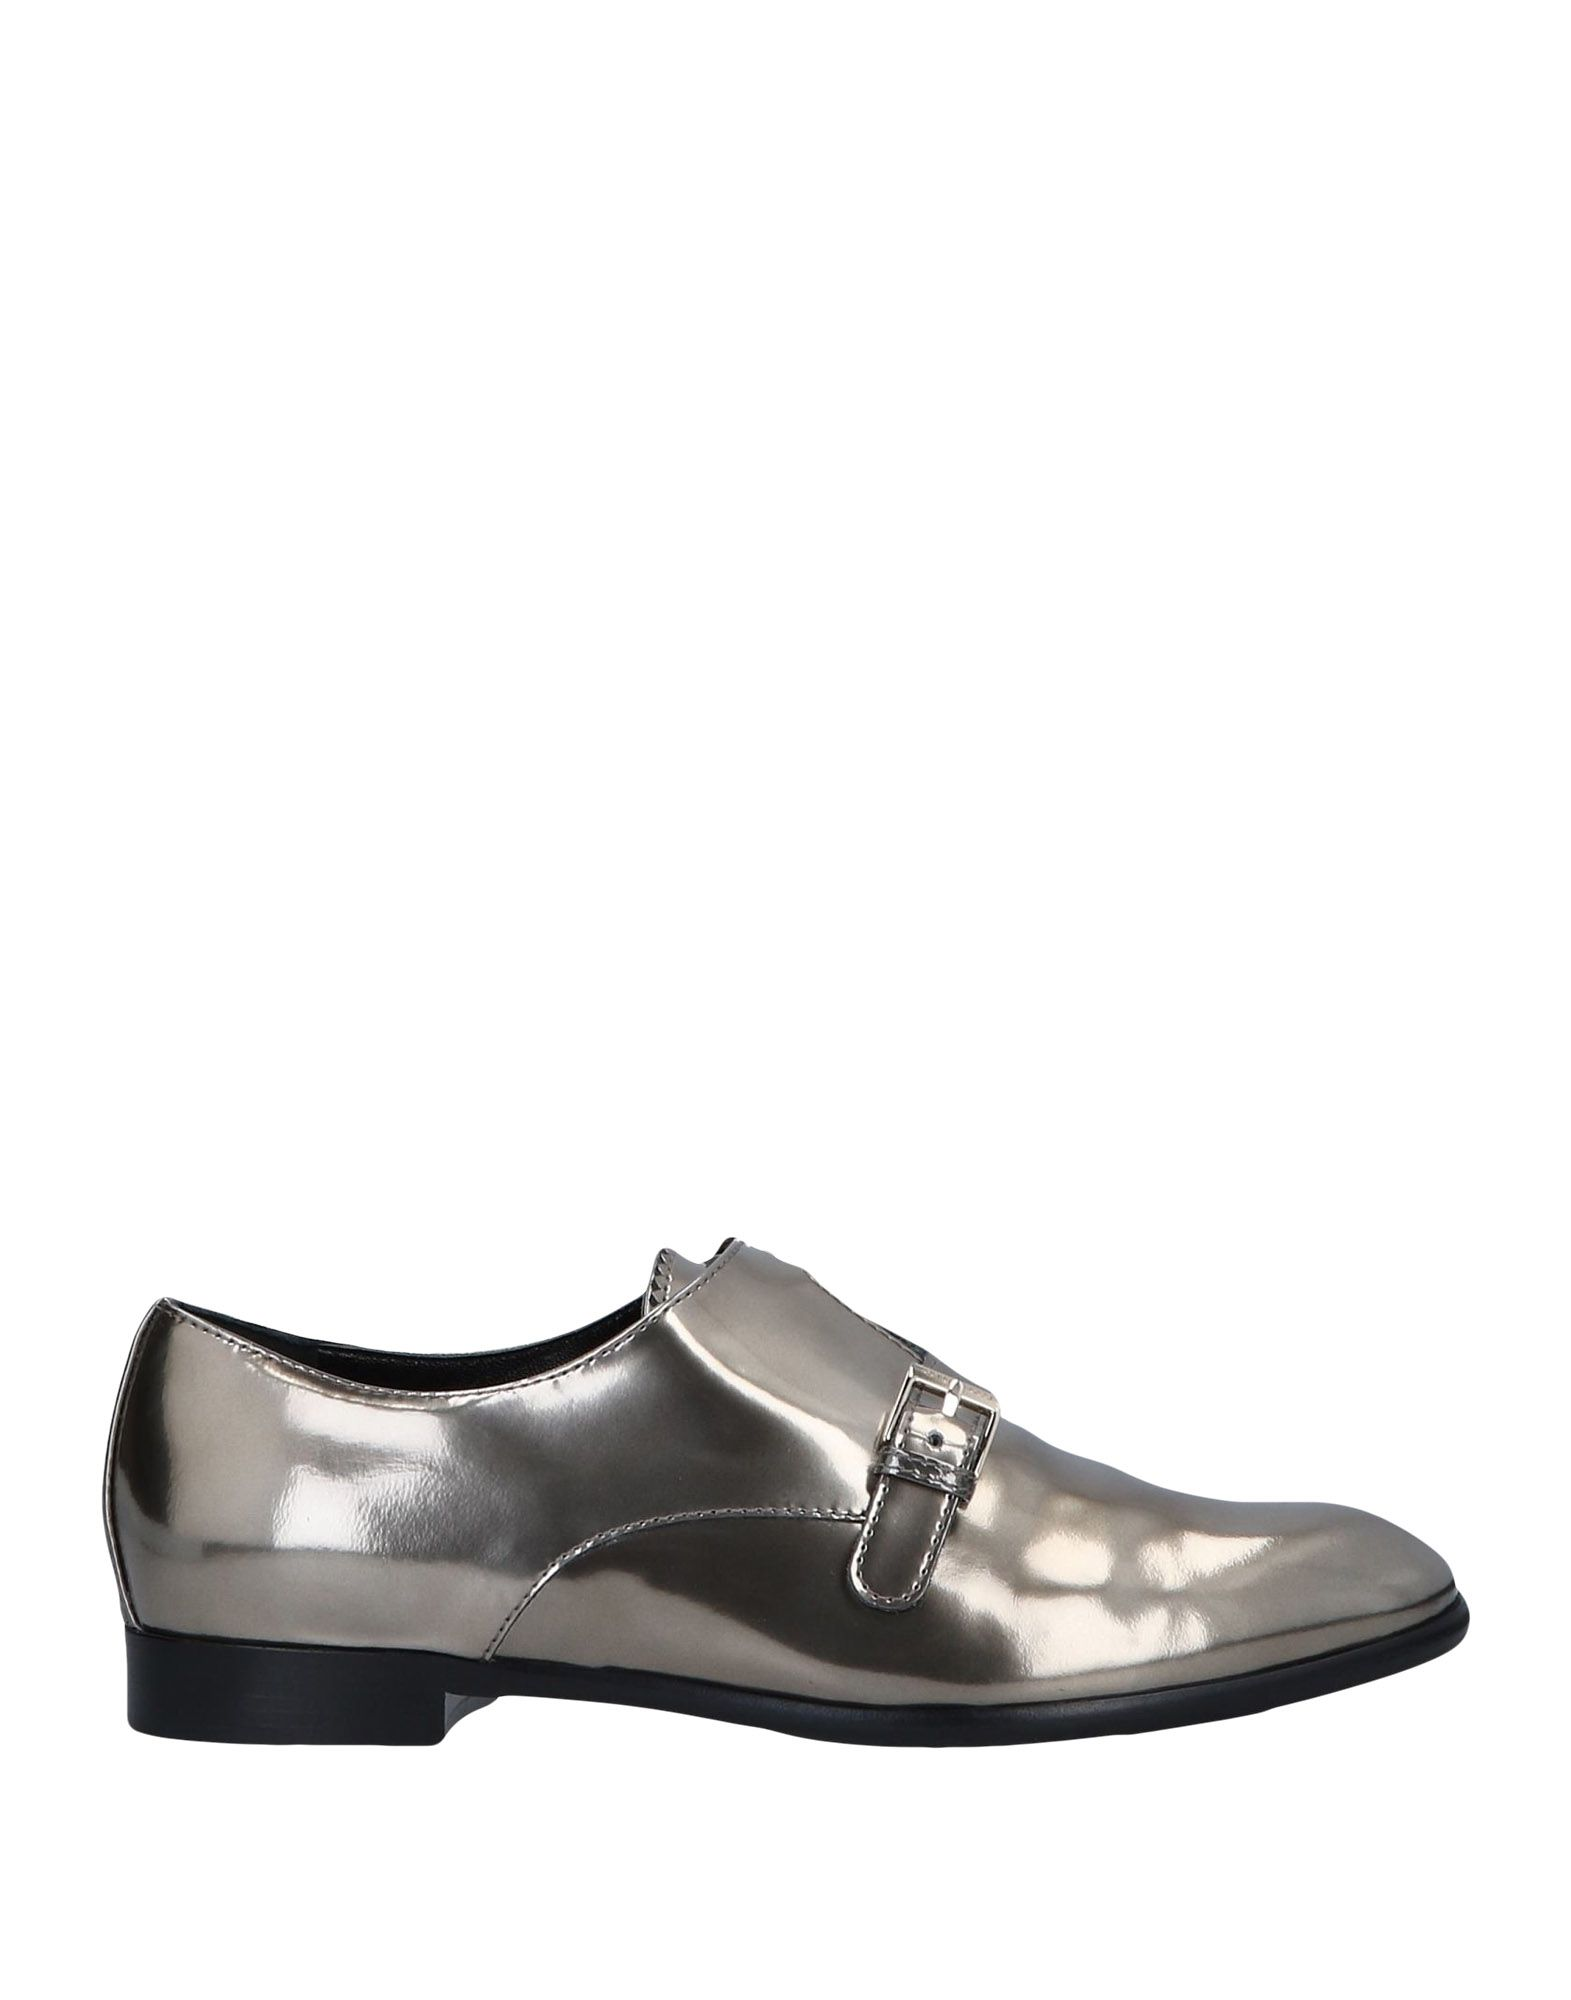 Sergio Rossi Loafers - Women Sergio Rossi Loafers online on 11523020ER  United Kingdom - 11523020ER on 5d243a